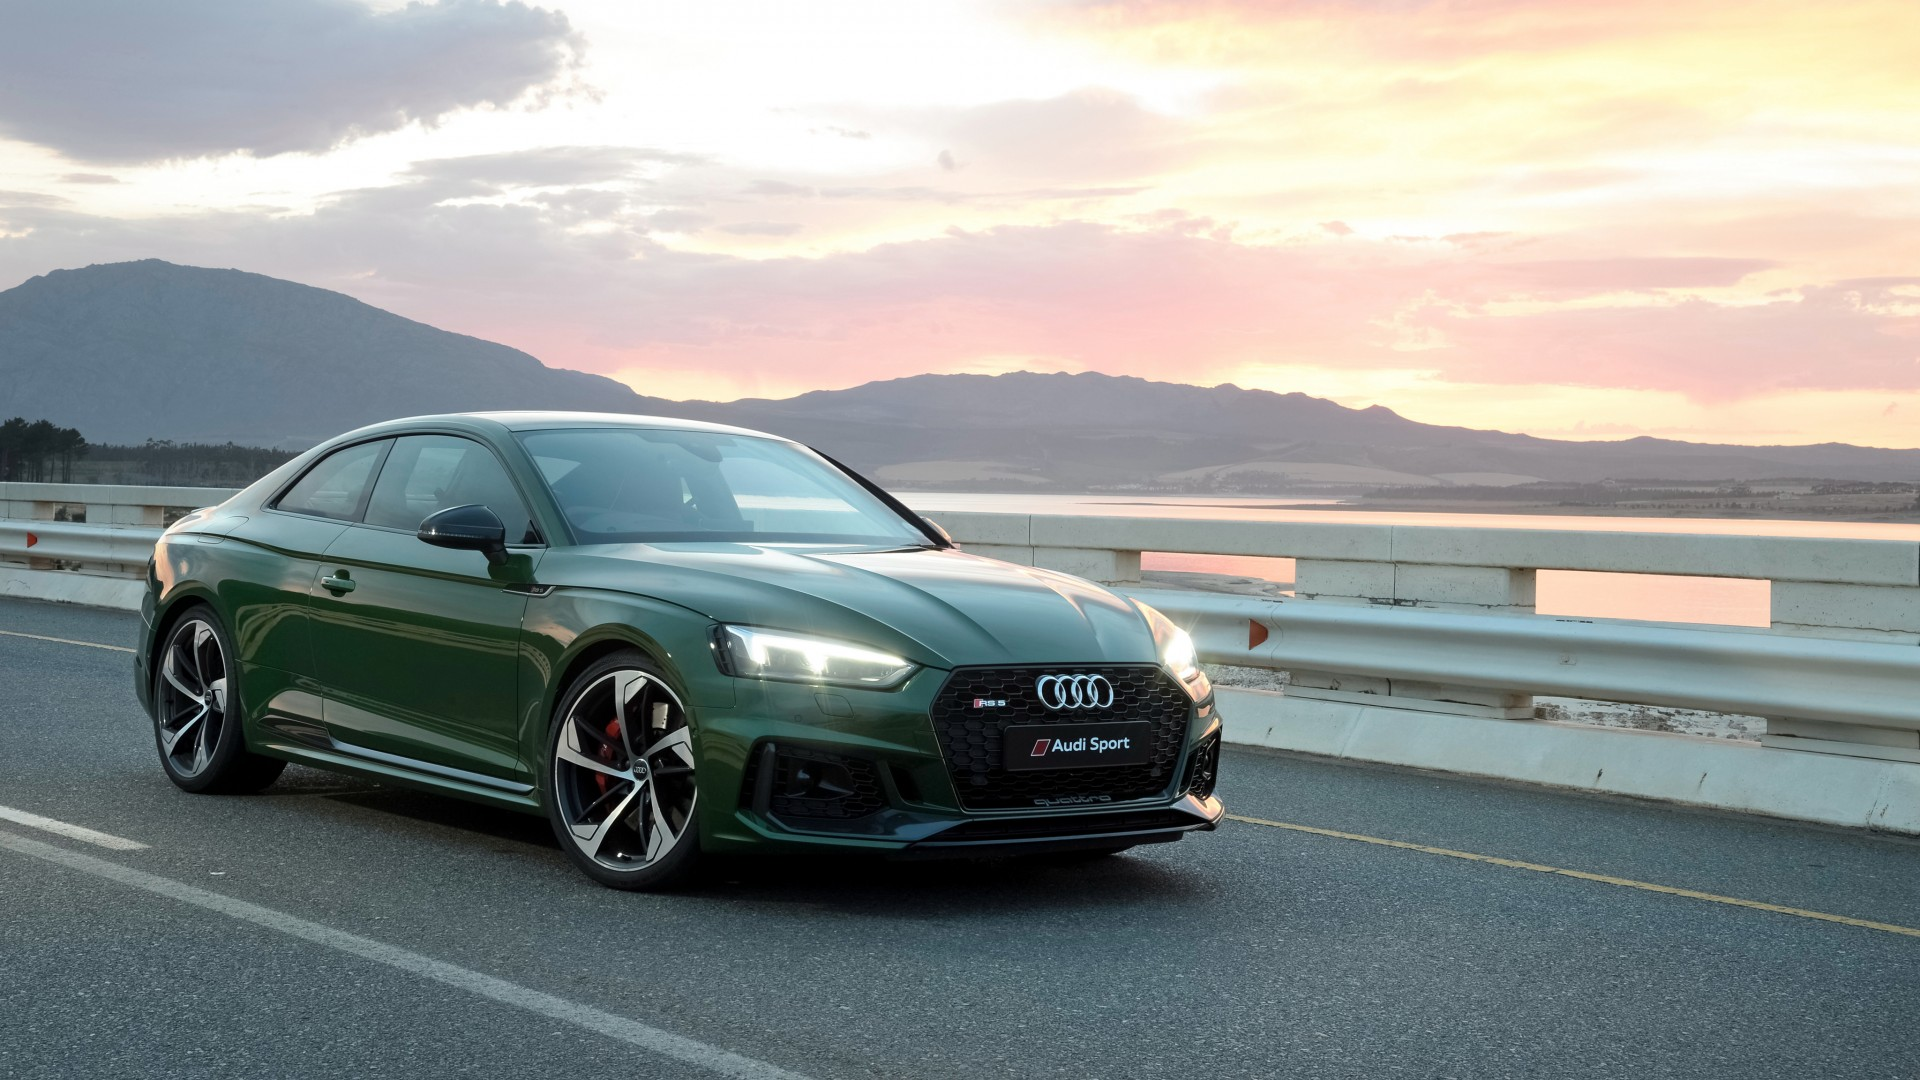 2018 Audi RS5 Coupe 4K Wallpaper | HD Car Wallpapers | ID ...